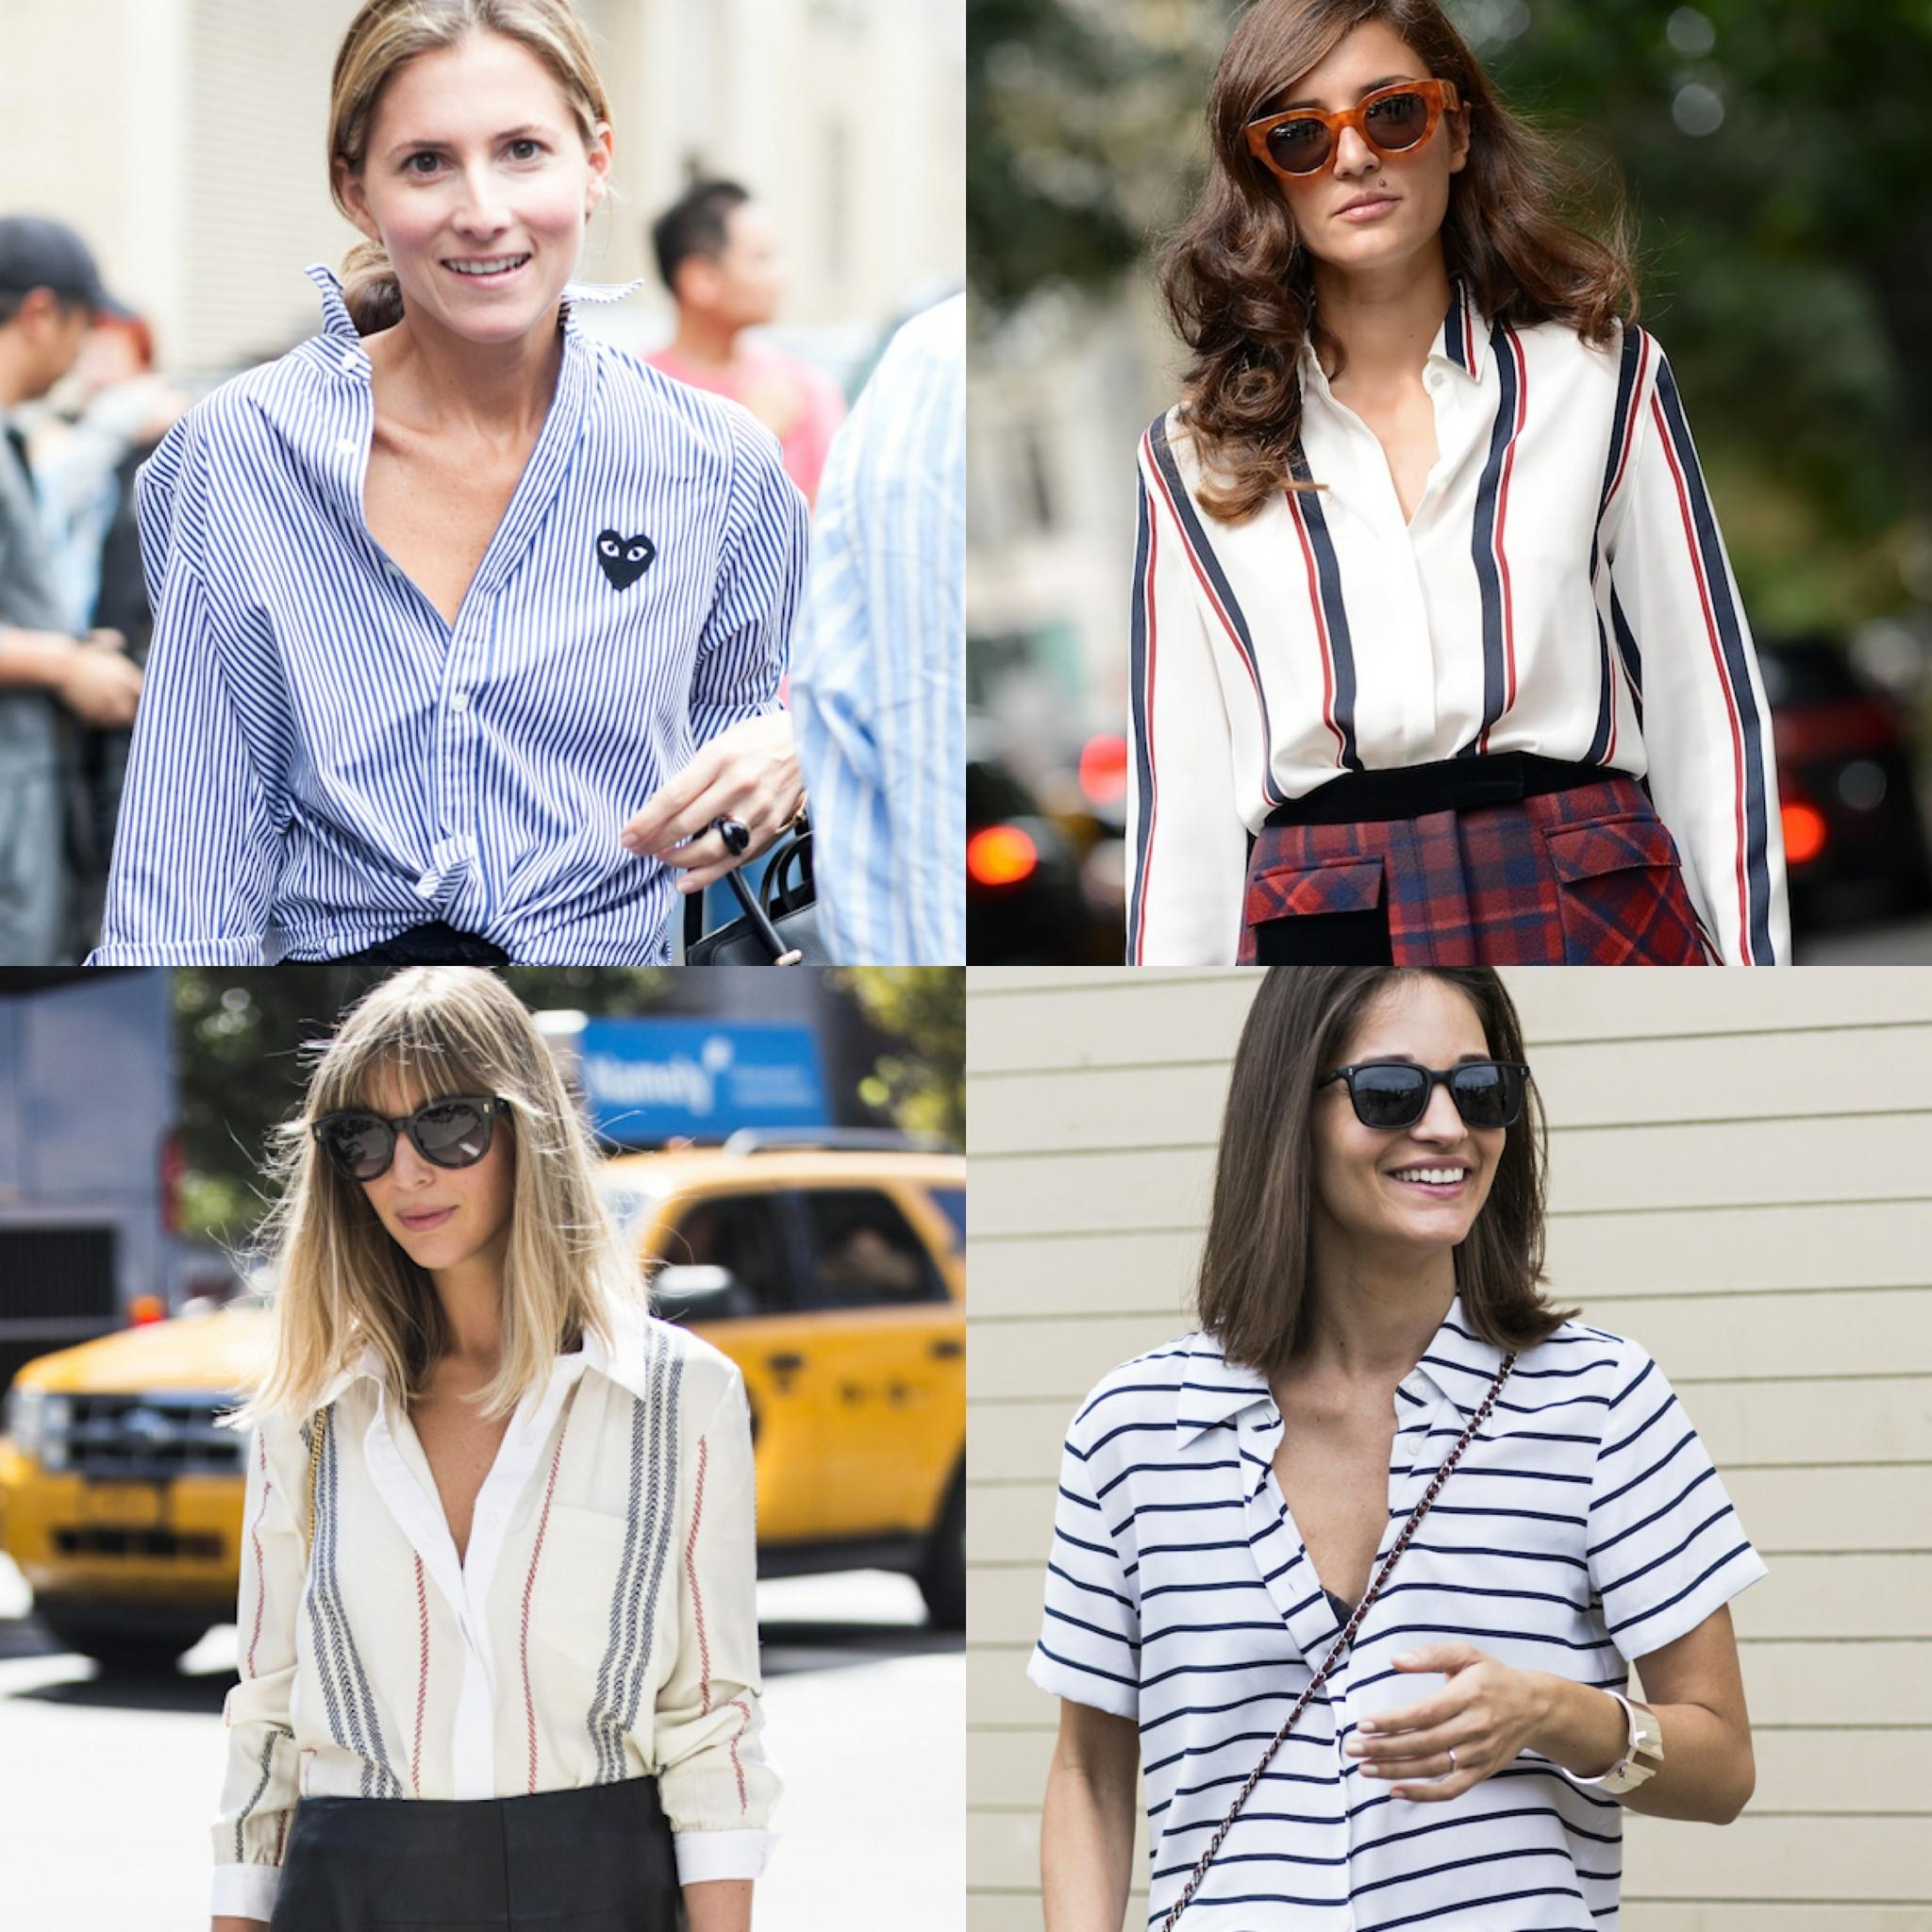 The stripe shirt is a fashion week hit, get in line. #FashionReboot http://t.co/AS7II2MZcL http://t.co/NKKkAasbsW